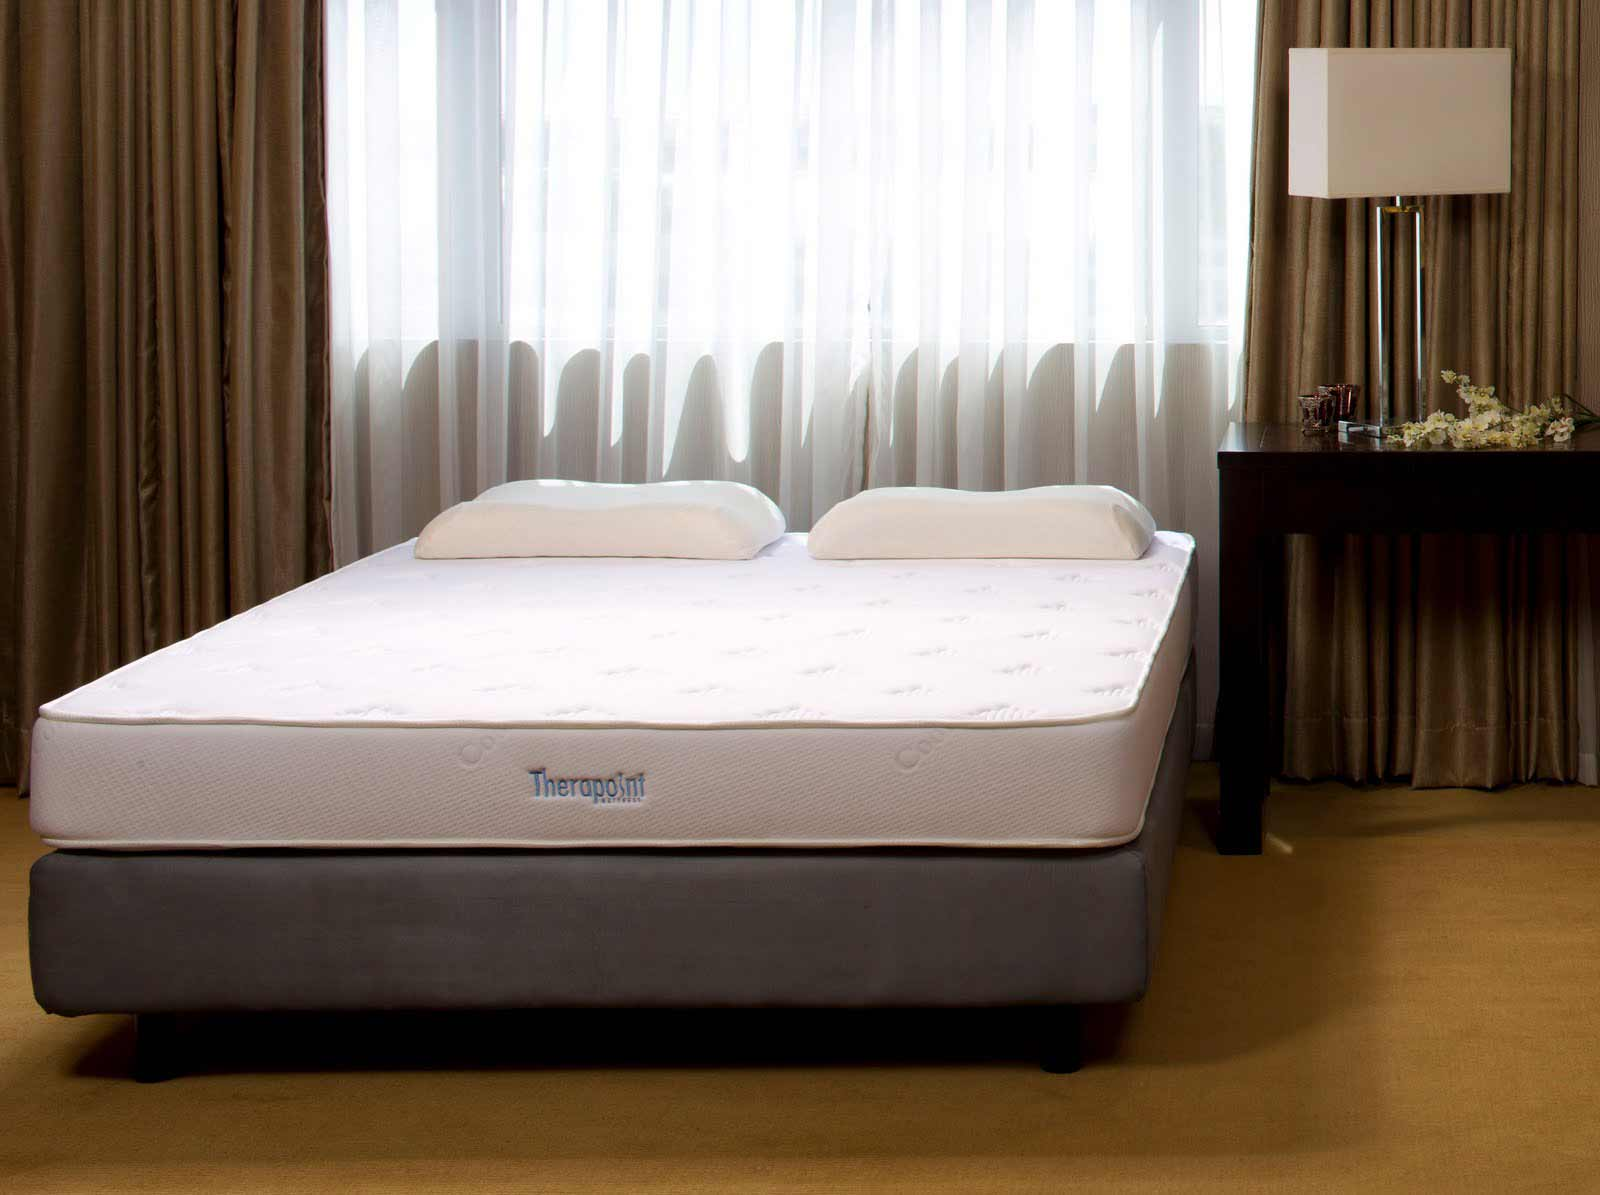 Best mattress with senso memory for eases back pain